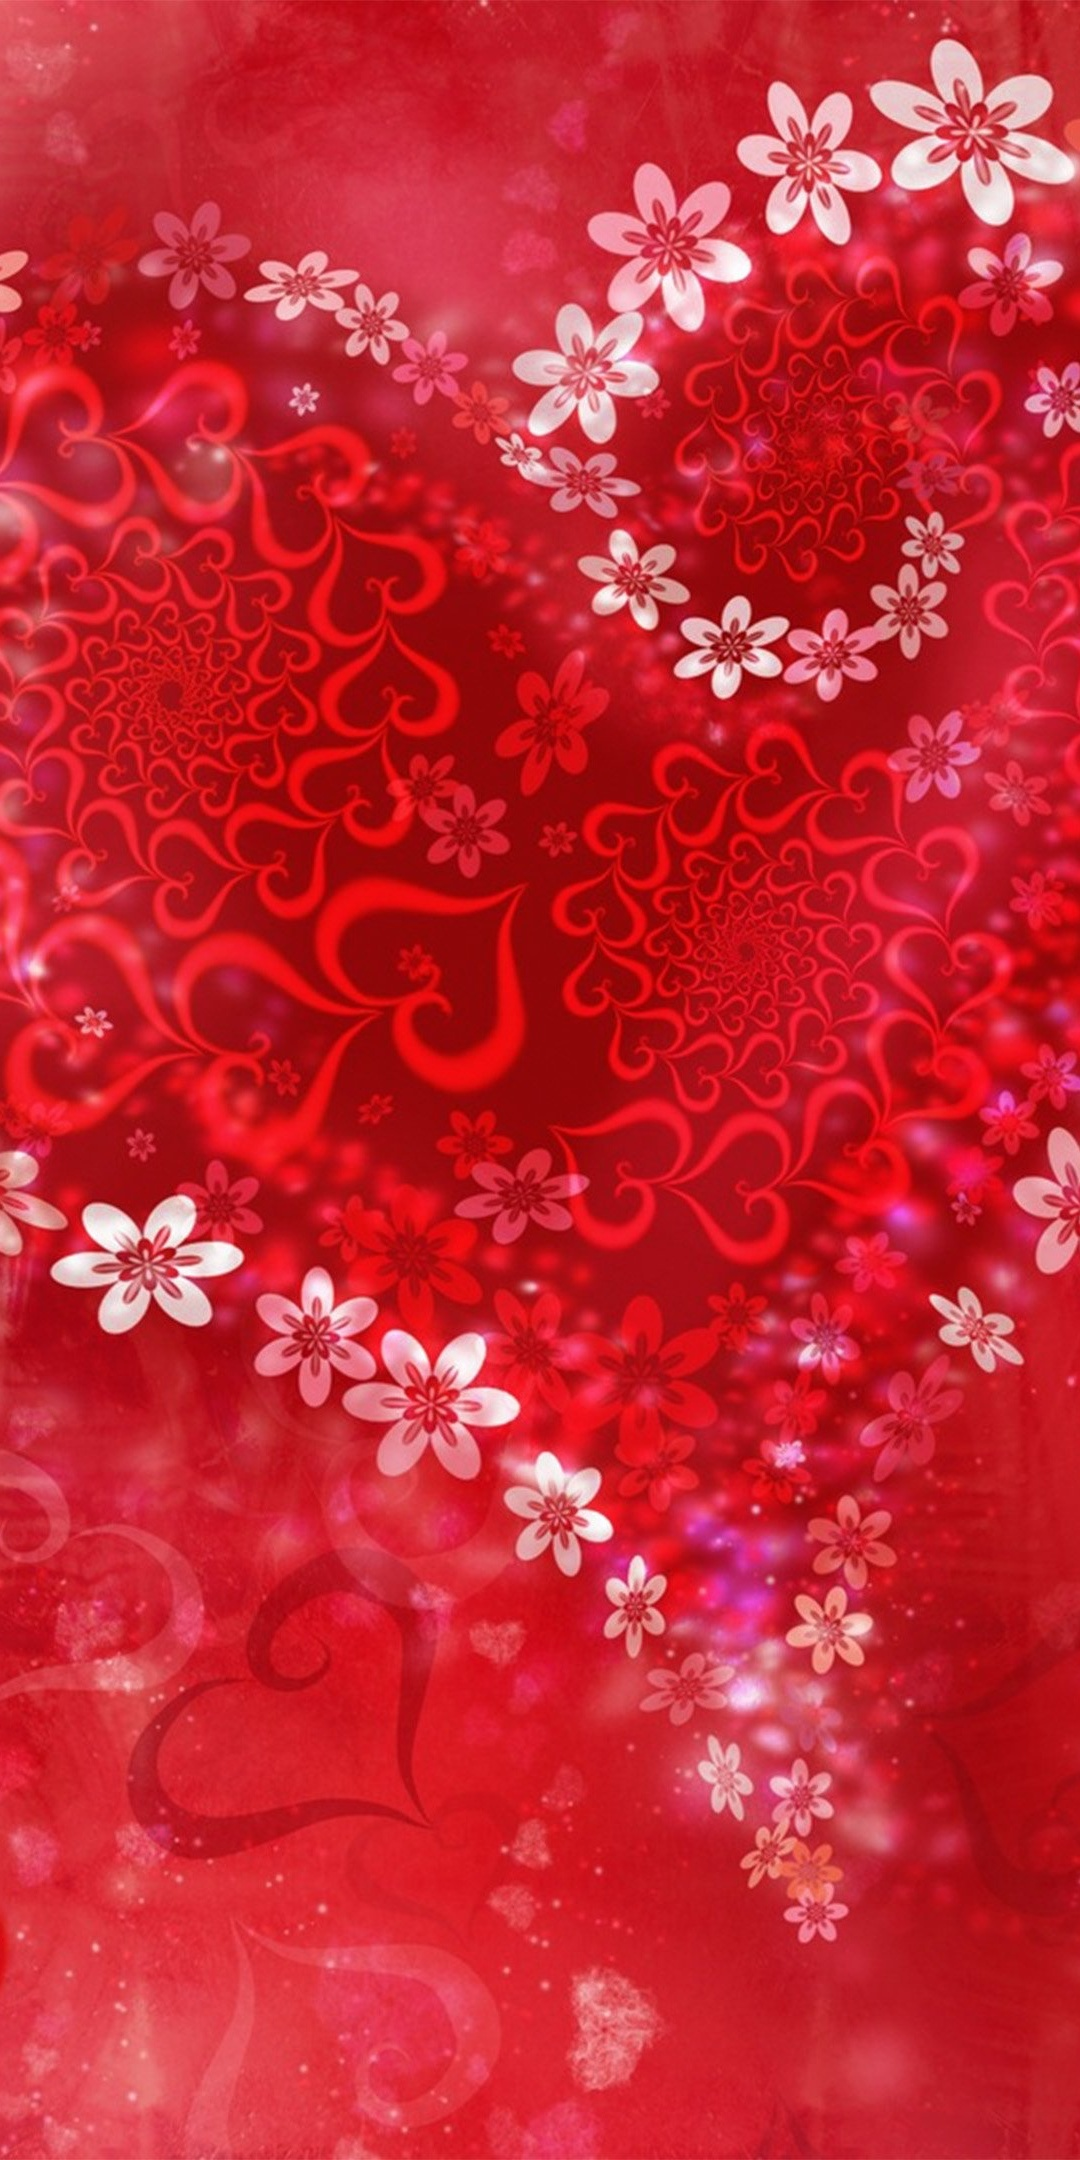 1080x2160 Valentine Day Heart 4k One Plus 5thonor 7xhonor View 10